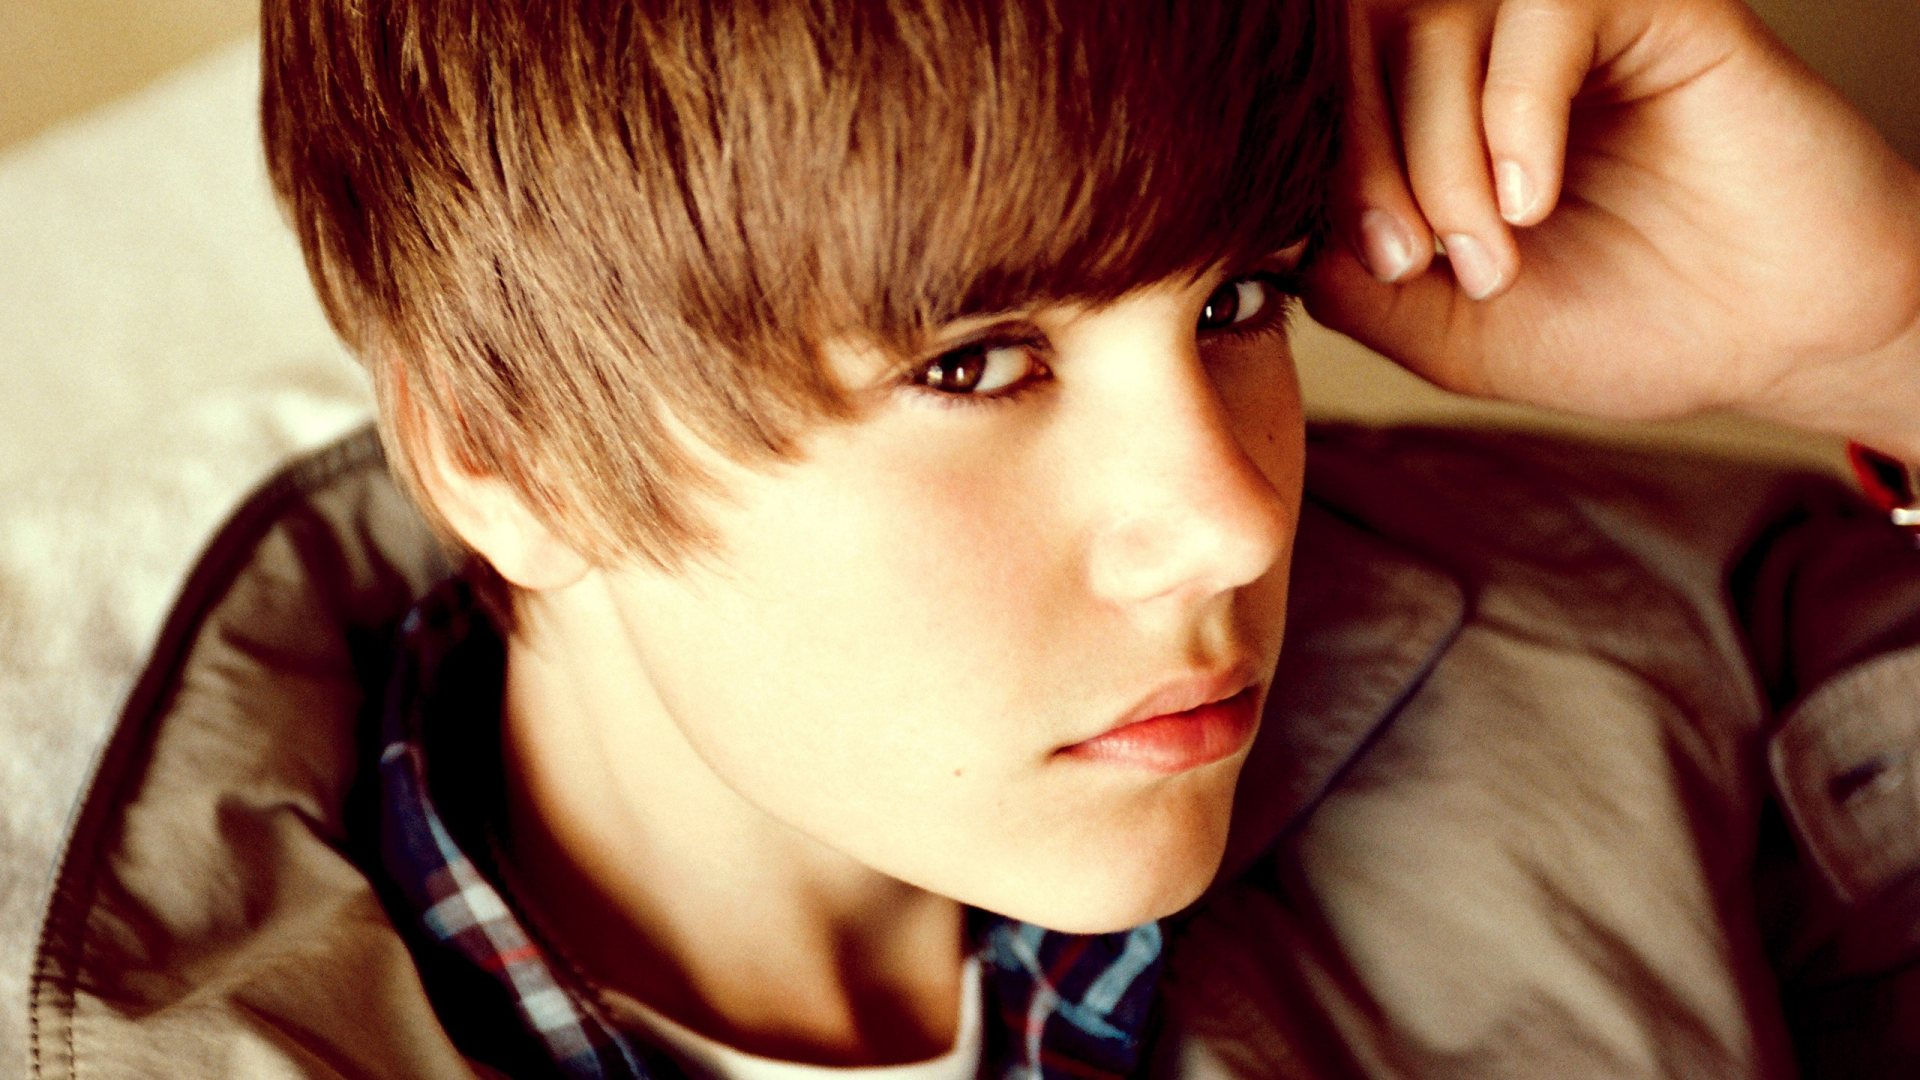 Image result for Baby song poster justin bieber hd pics